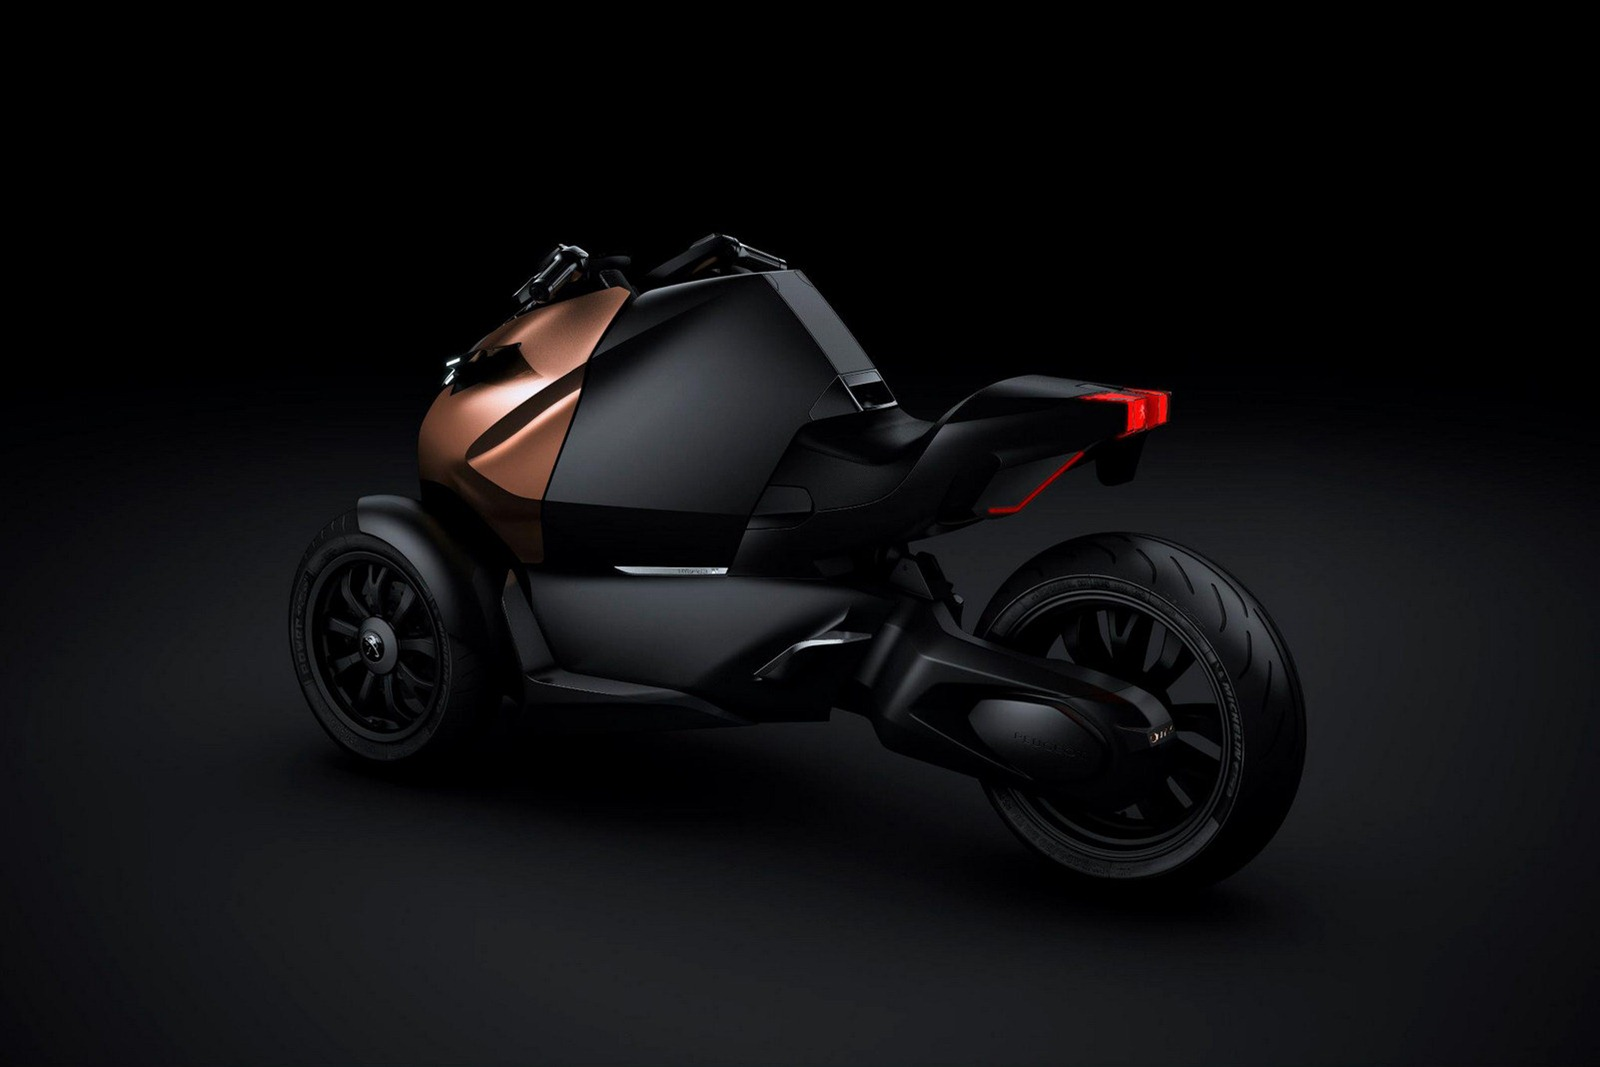 Peugeot Onyx Supercar Gets Its Own Scooter Concept